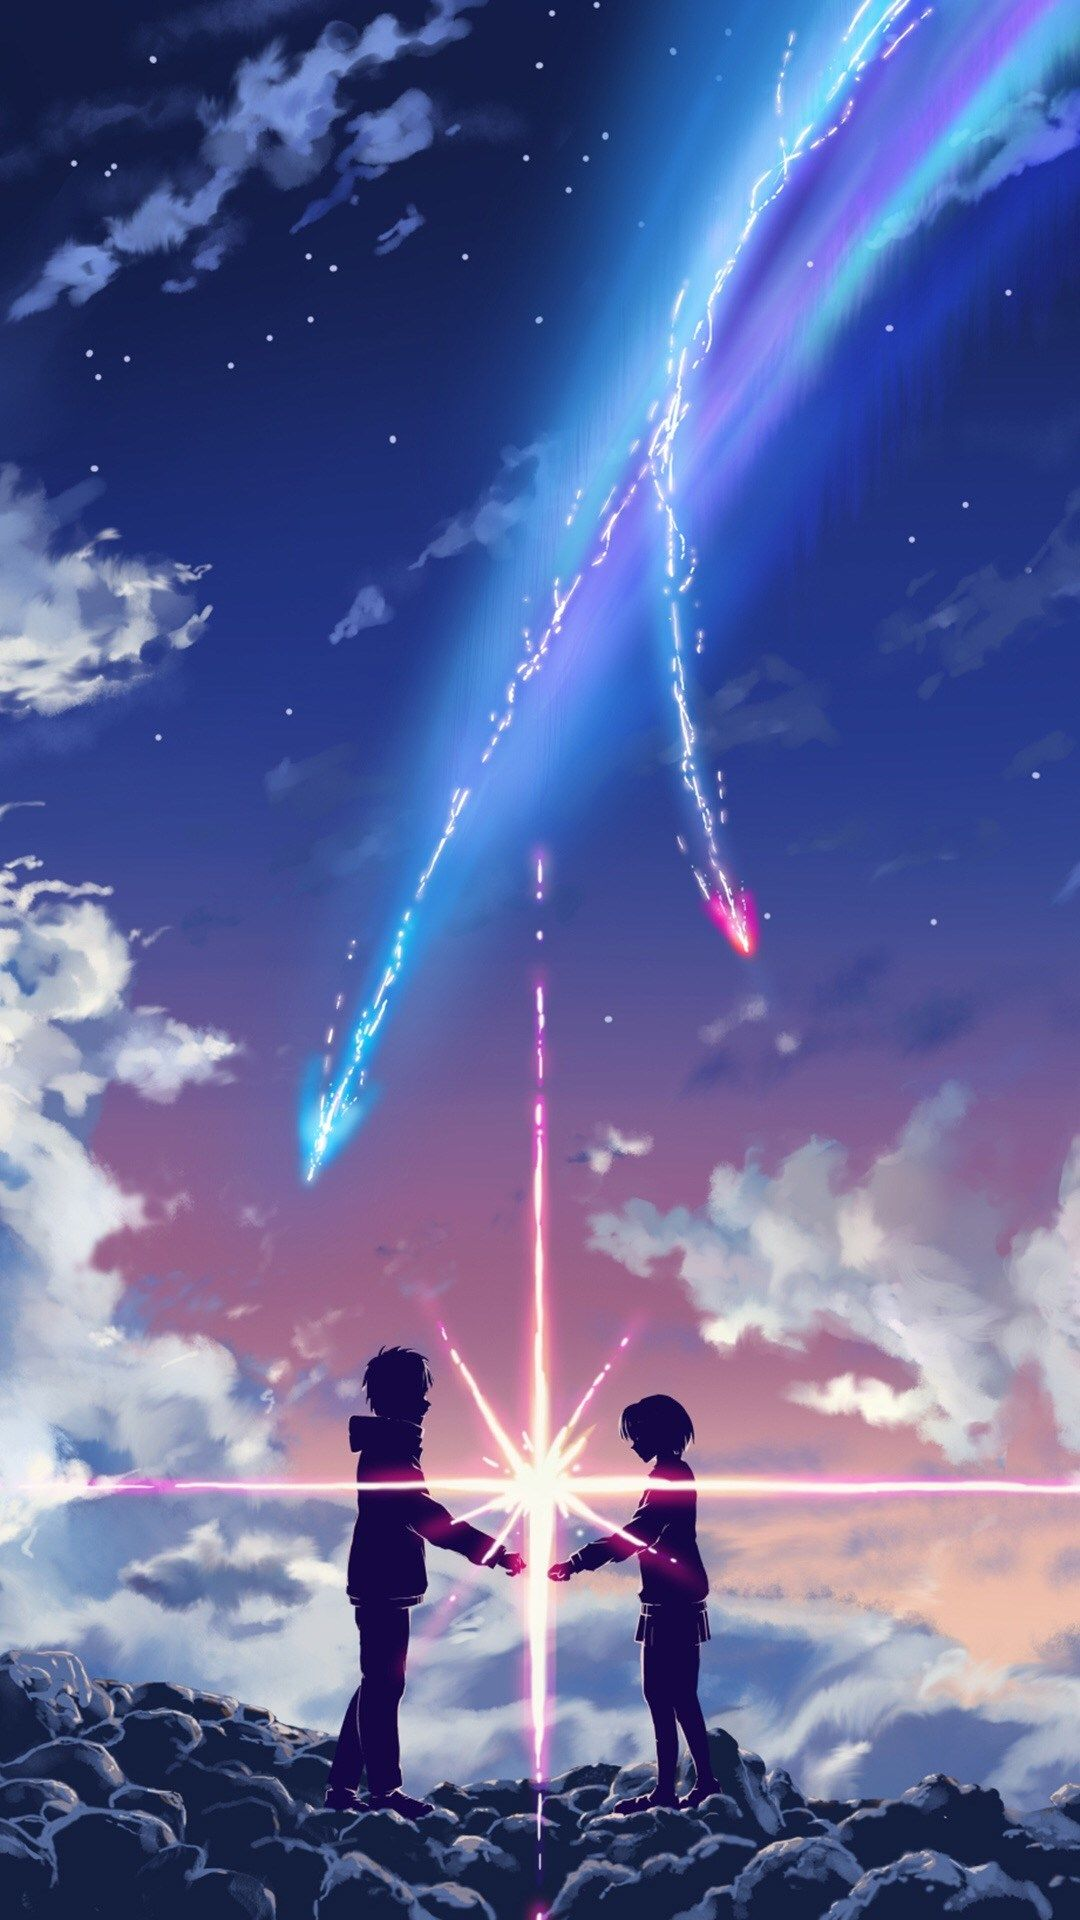 Your Name Movie Touching Through Space Poster Iphone 8 Wallpapers